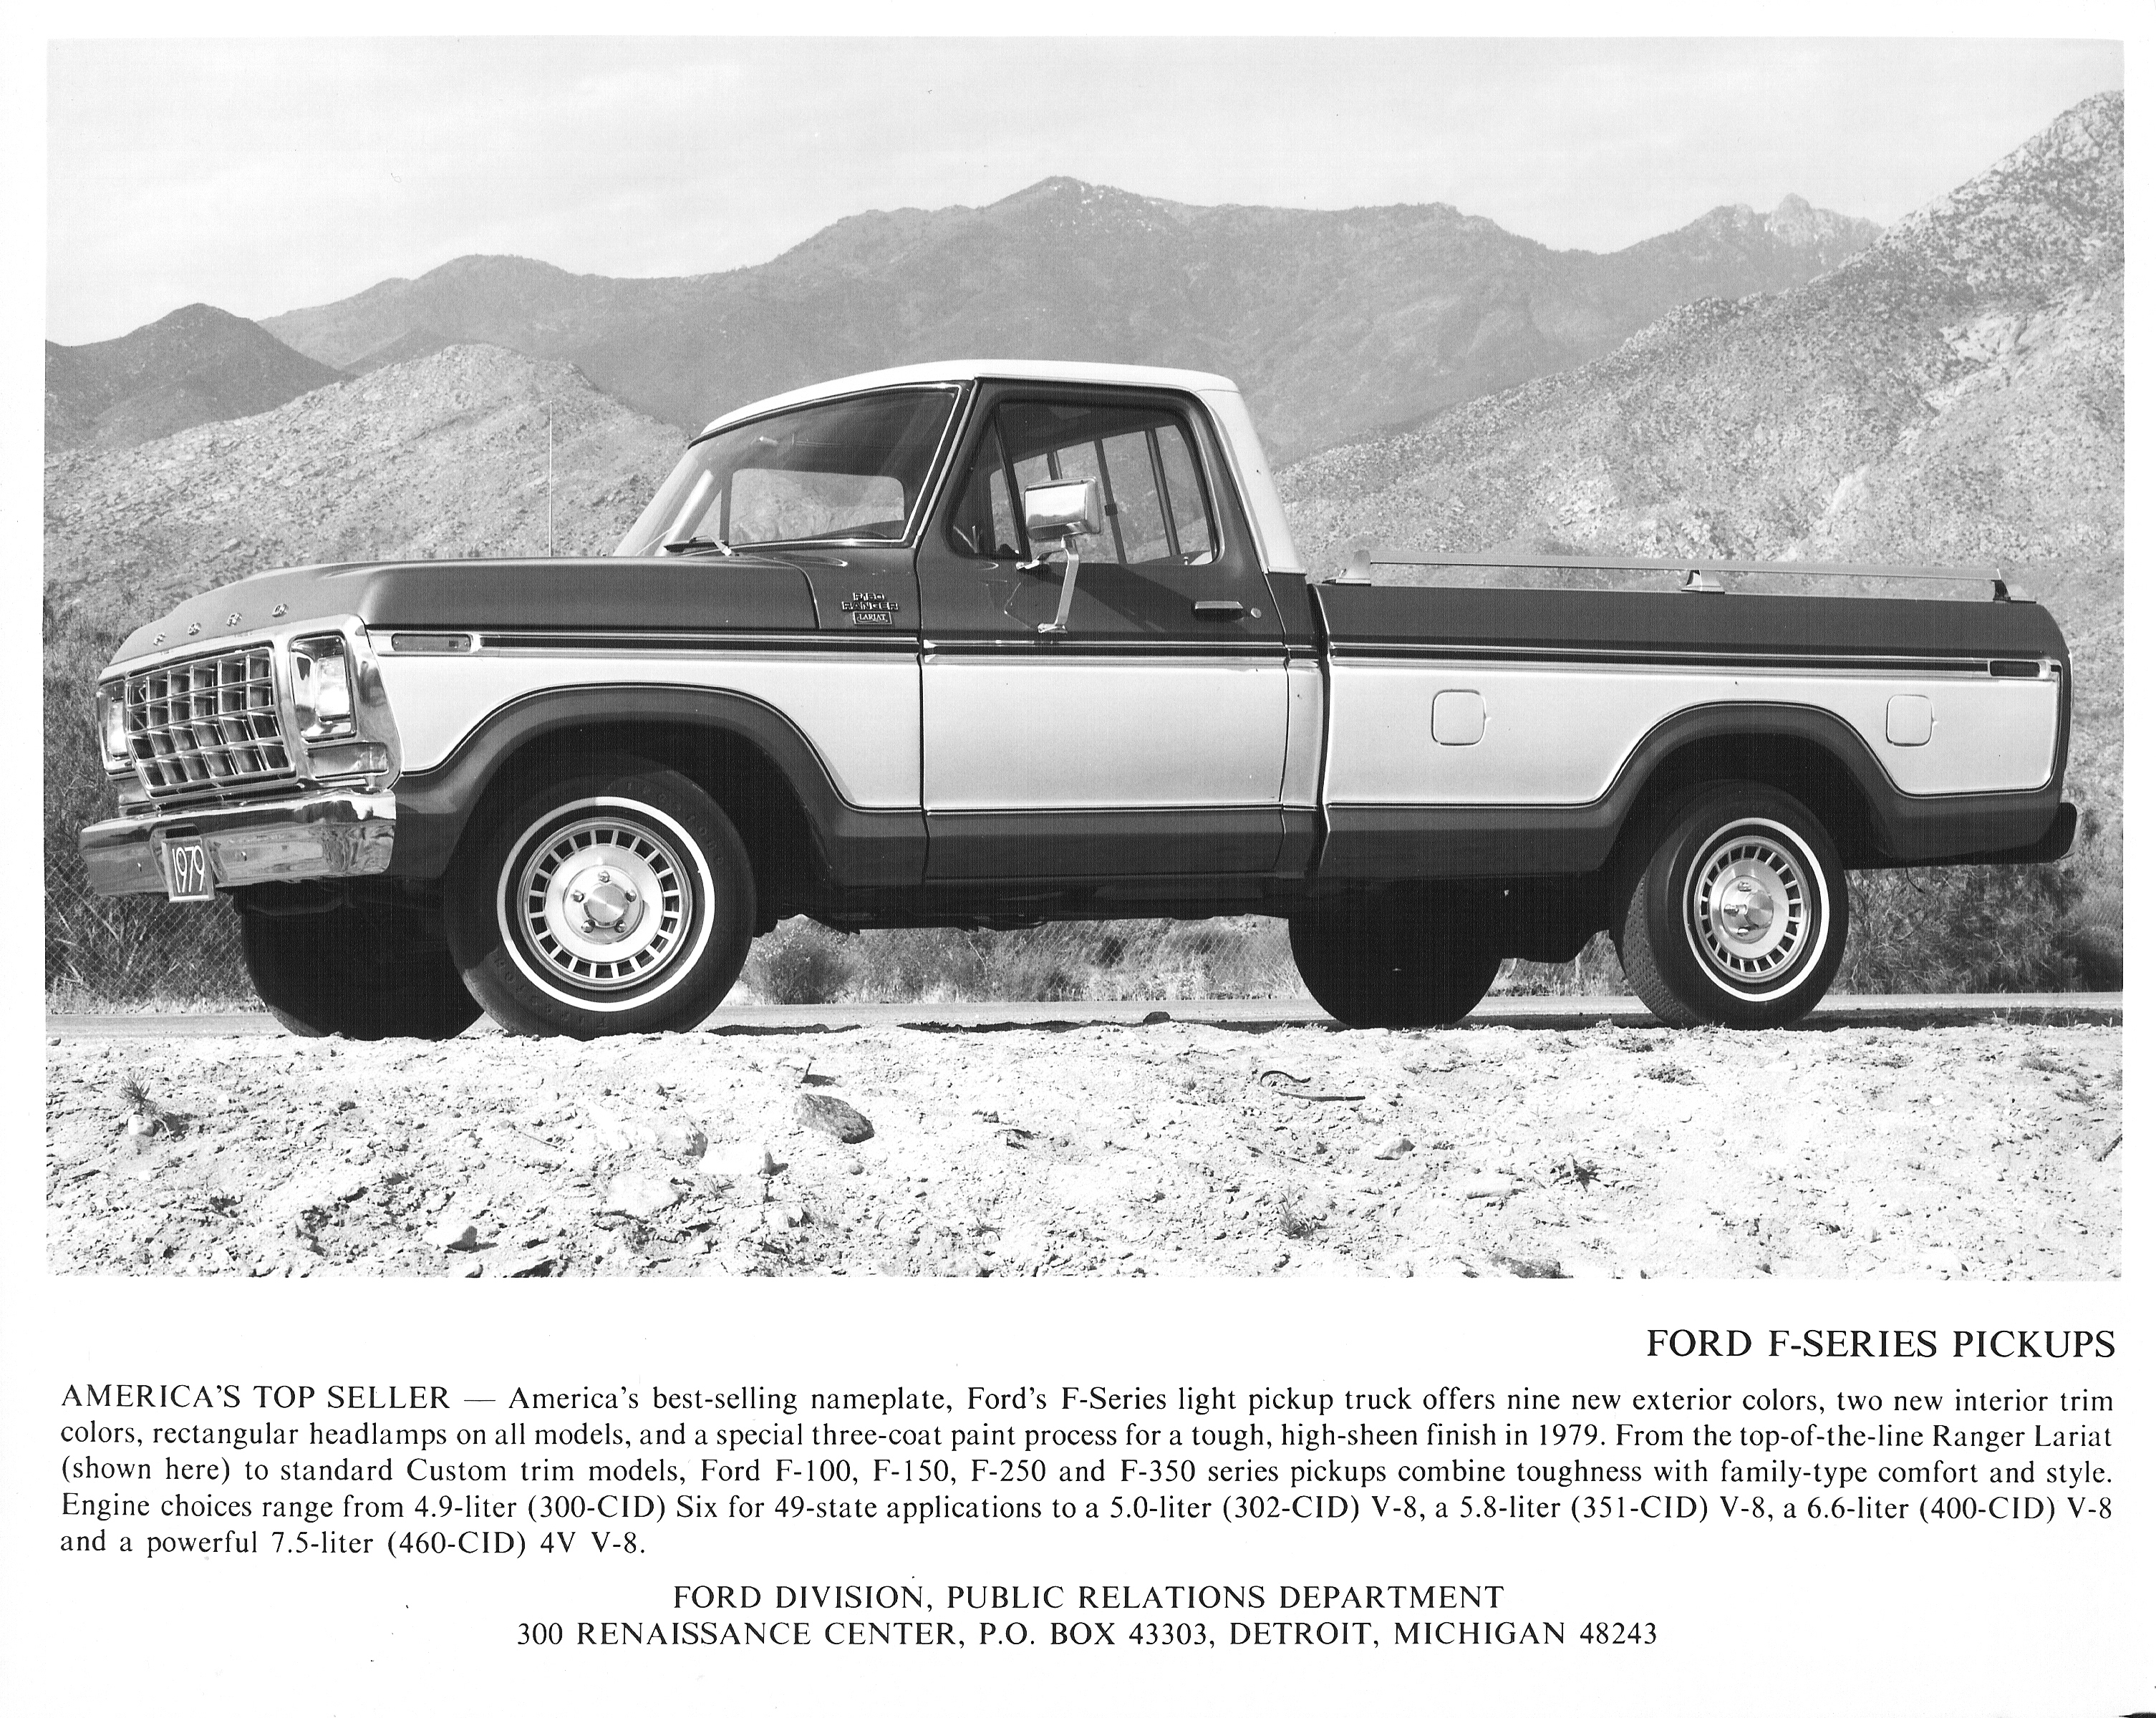 Ford F 150 The Crittenden Automotive Library 2004 Special Edition View Photo Of 1979 Ranger Lariat